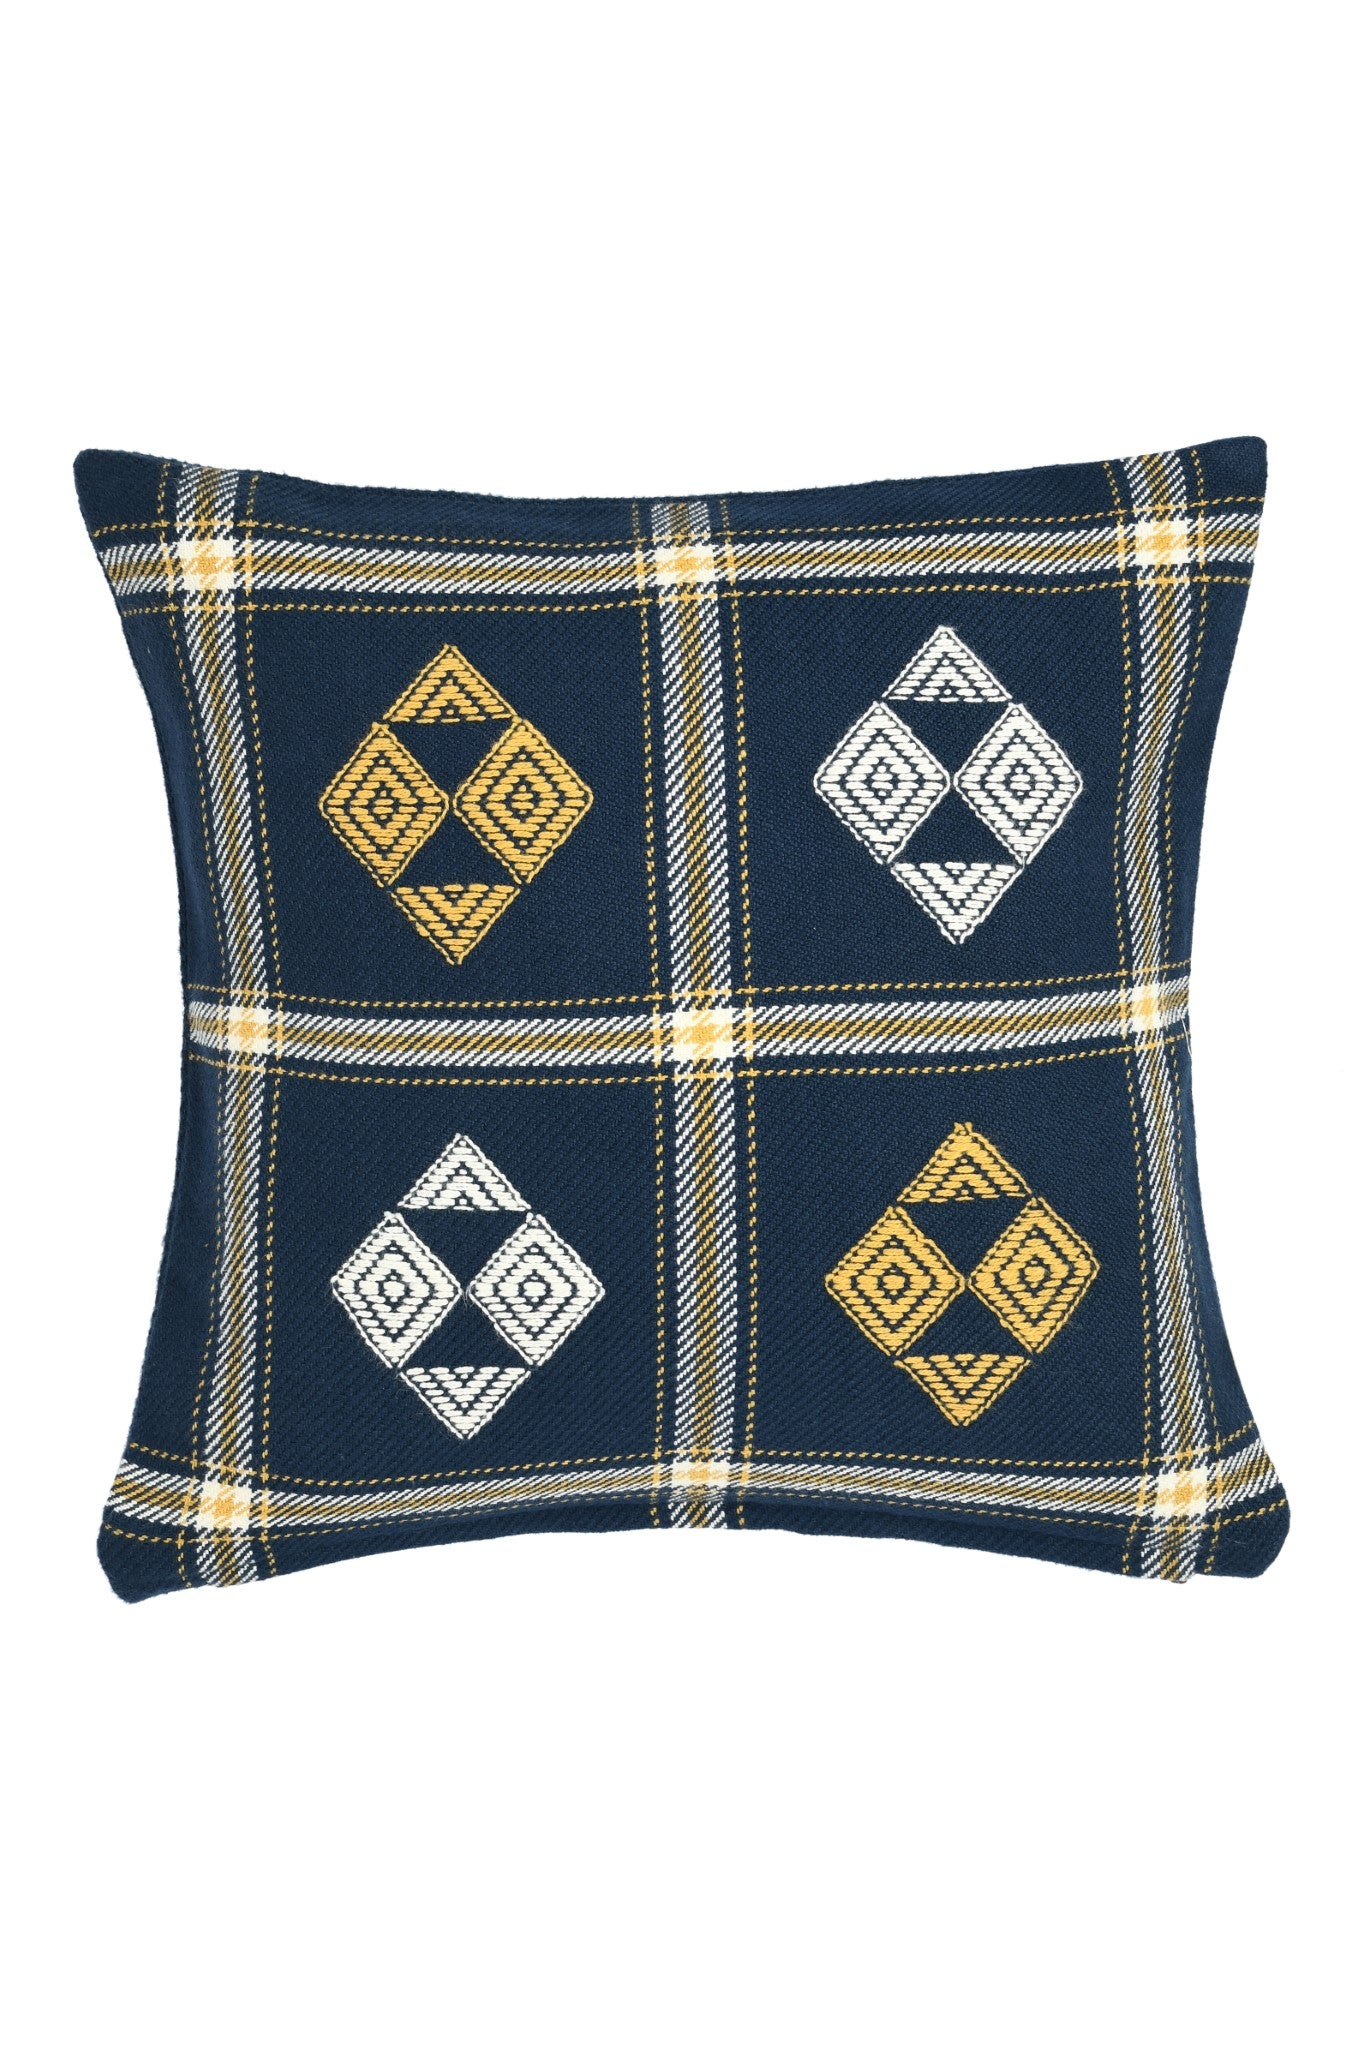 Suti Extra Weft Woven 12X12 Cushion Cover in Navy